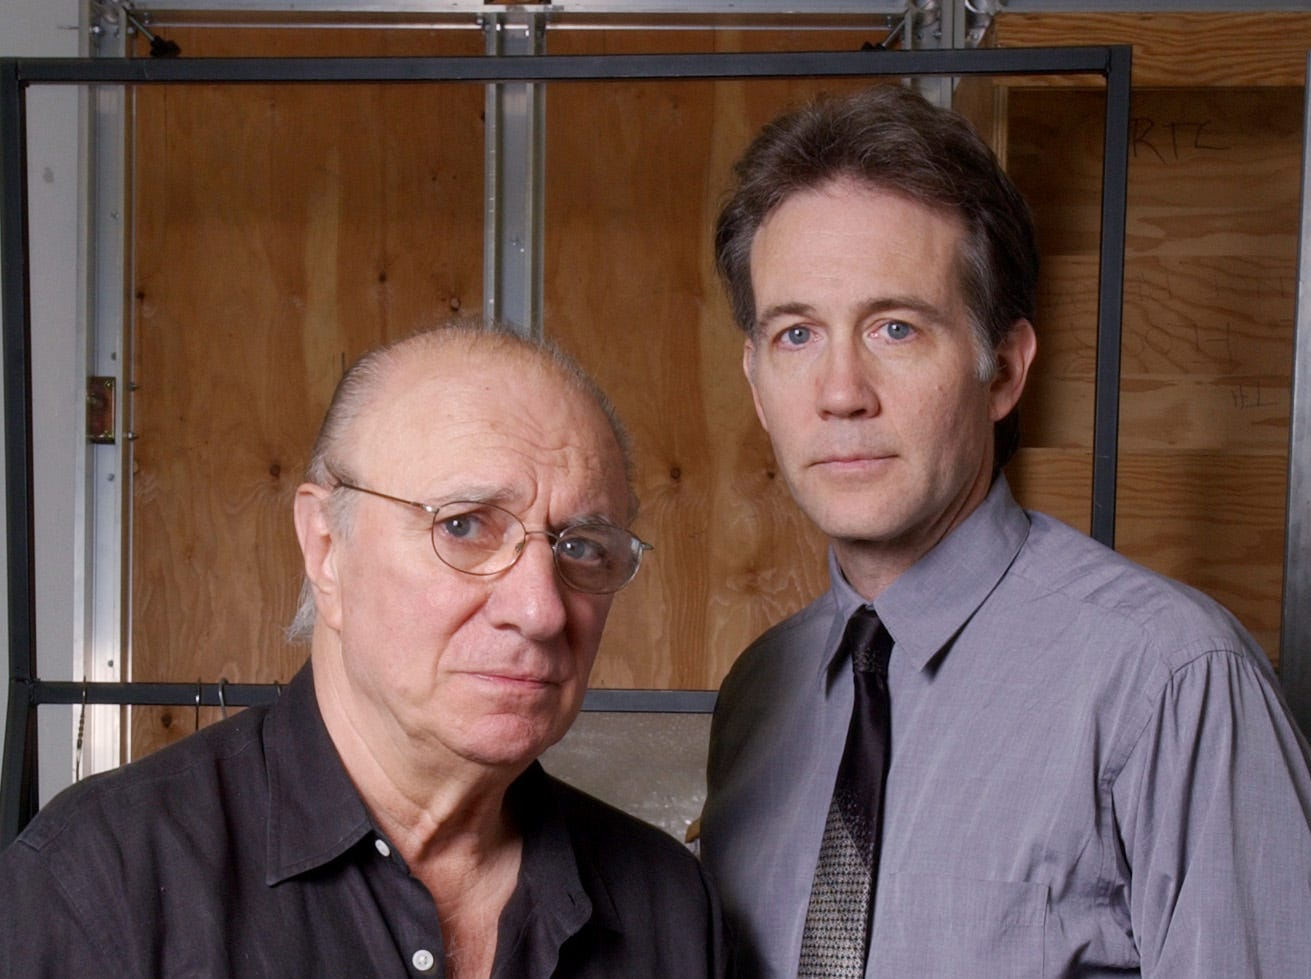 "Actors Philip Bosco, left,  who plays Juror 3, and Boyd Gaines, Juror 8, in the  Roundabout Theatre Company production of ""Twelve Angry Men"" pose for a photograph at a New York rehearsal studio Sept. 14, 2004. (AP Photo/Richard Drew)"